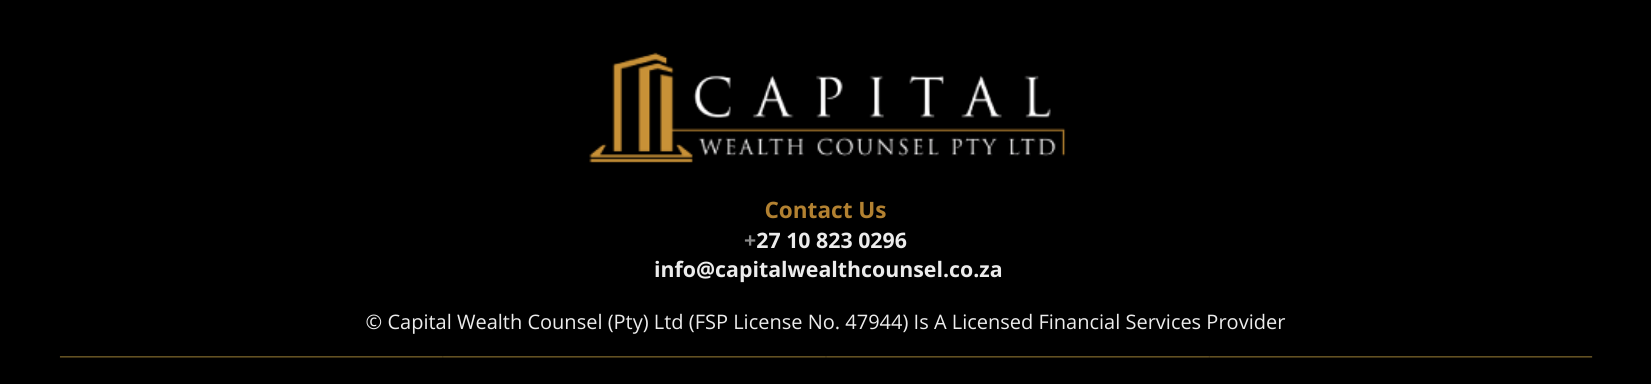 Capital Wealth Counsel